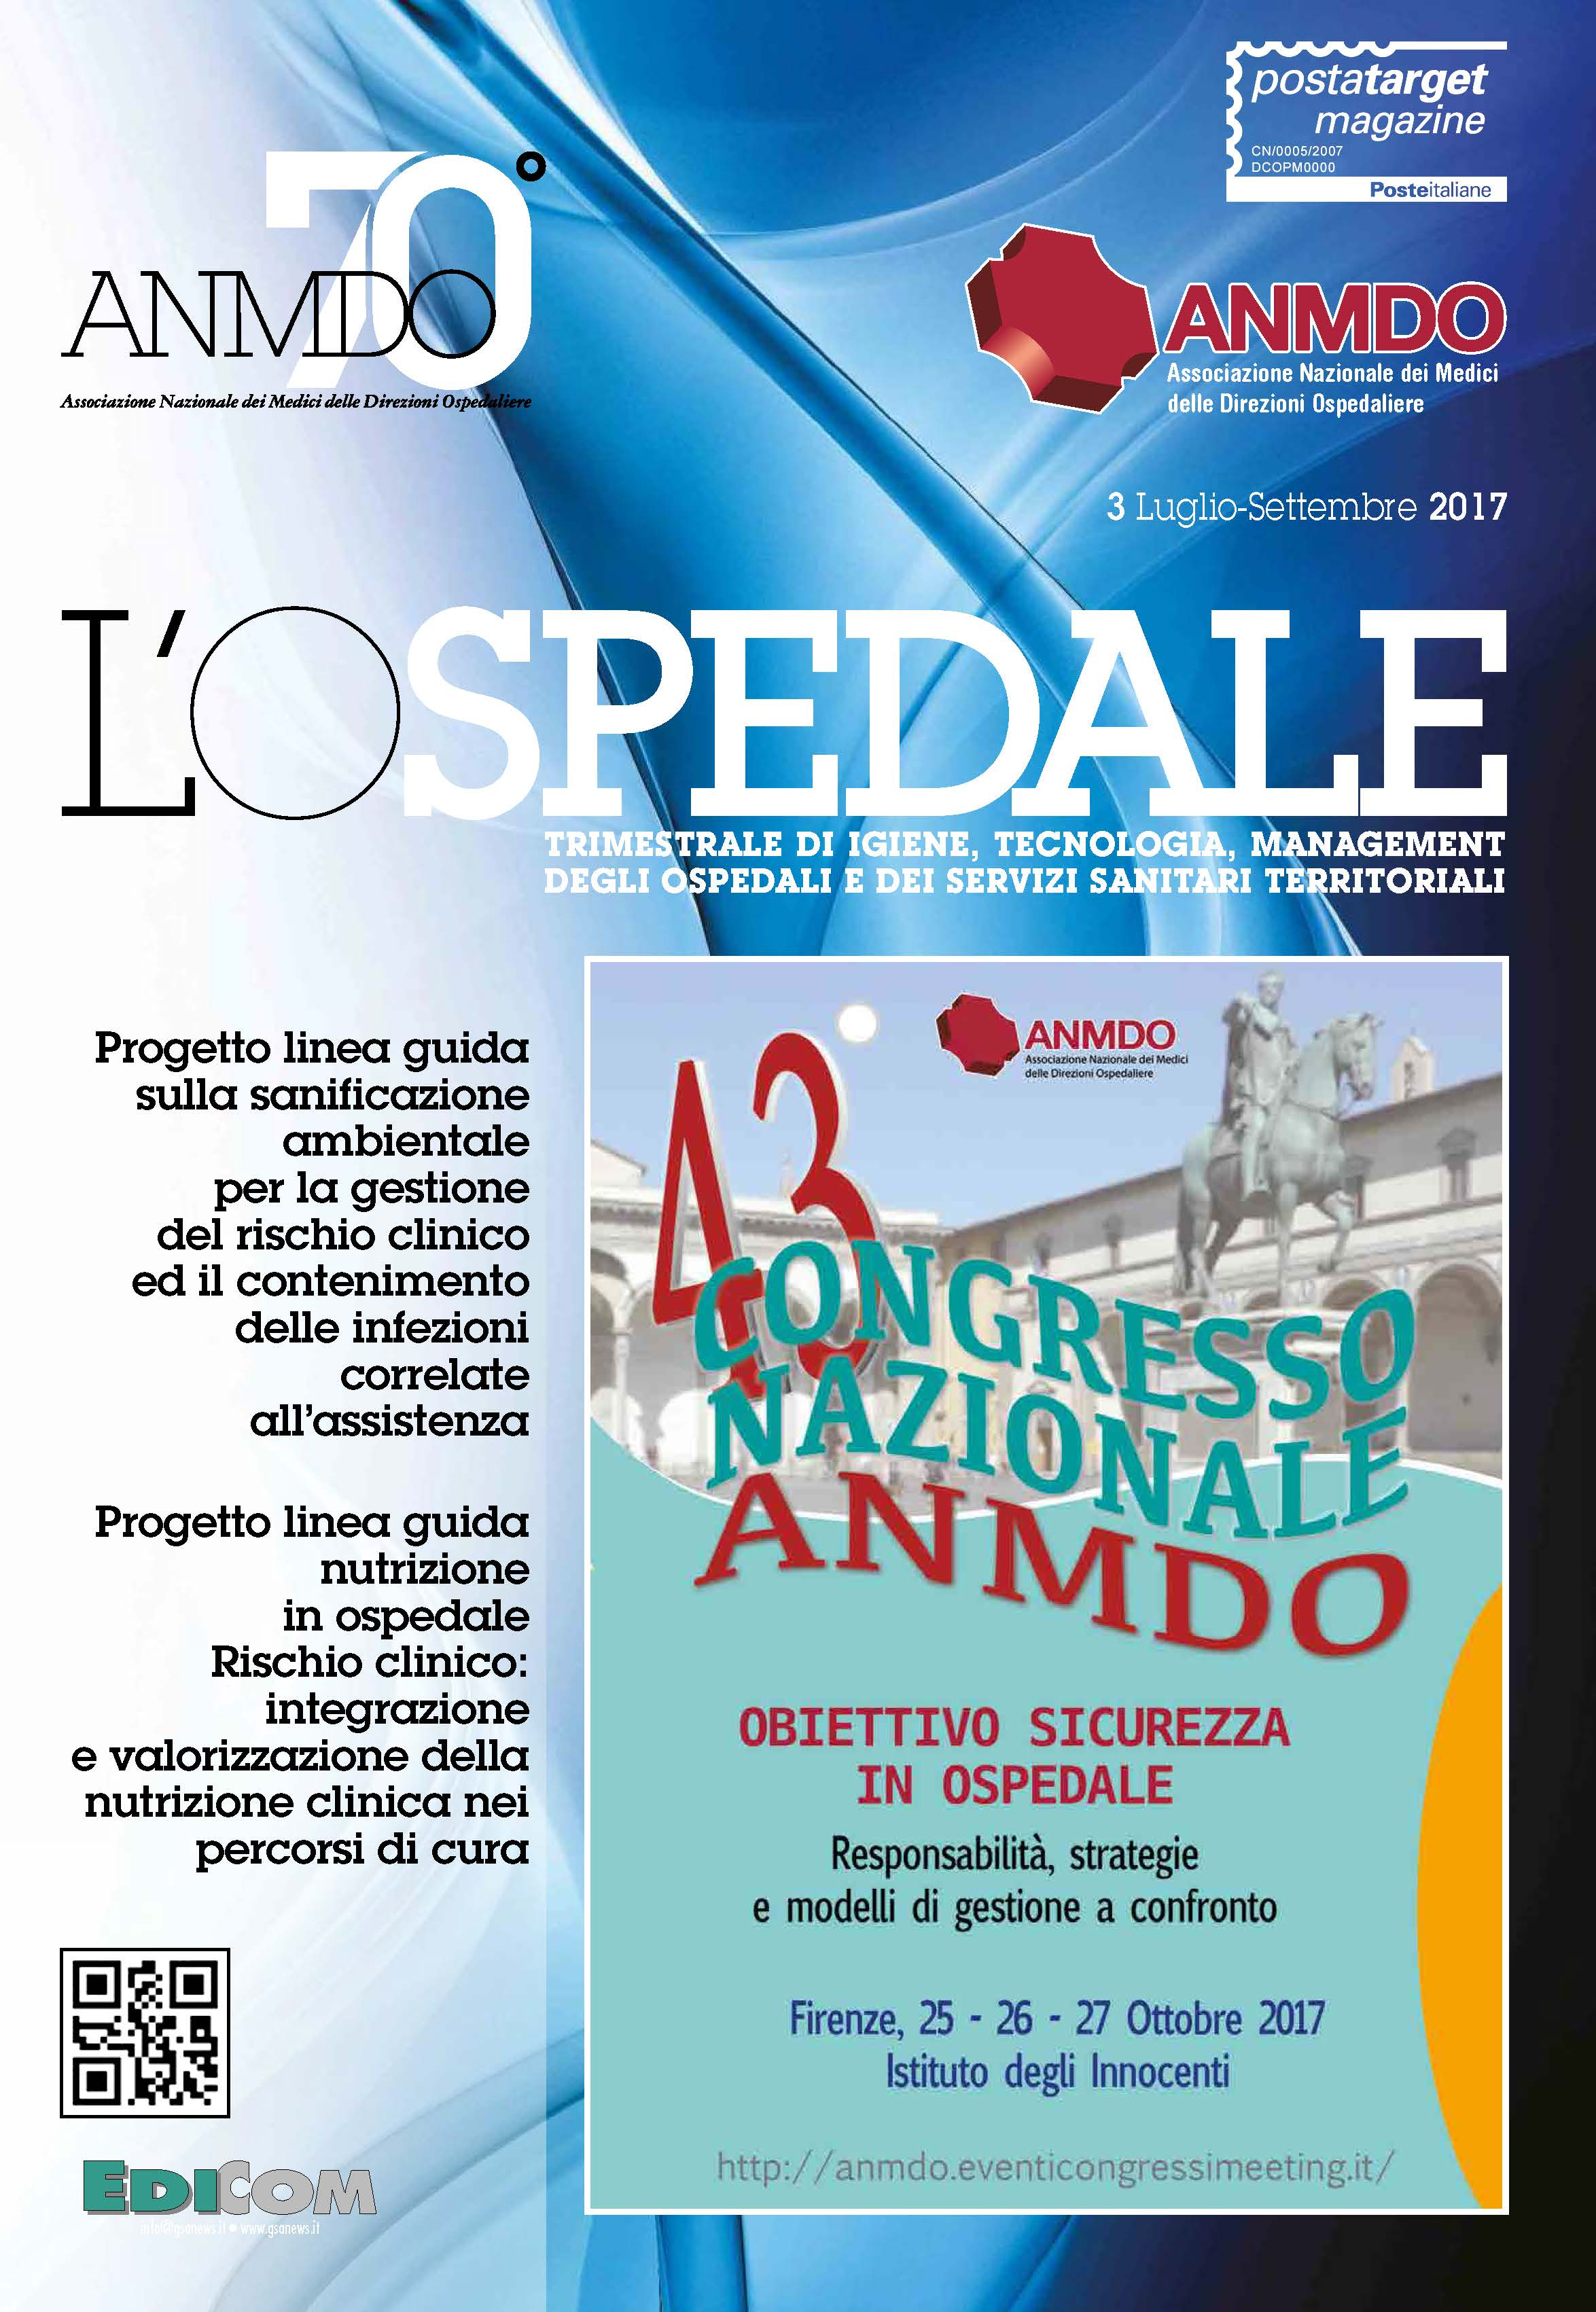 Pagine da OSP_3-2017_LR.compressed